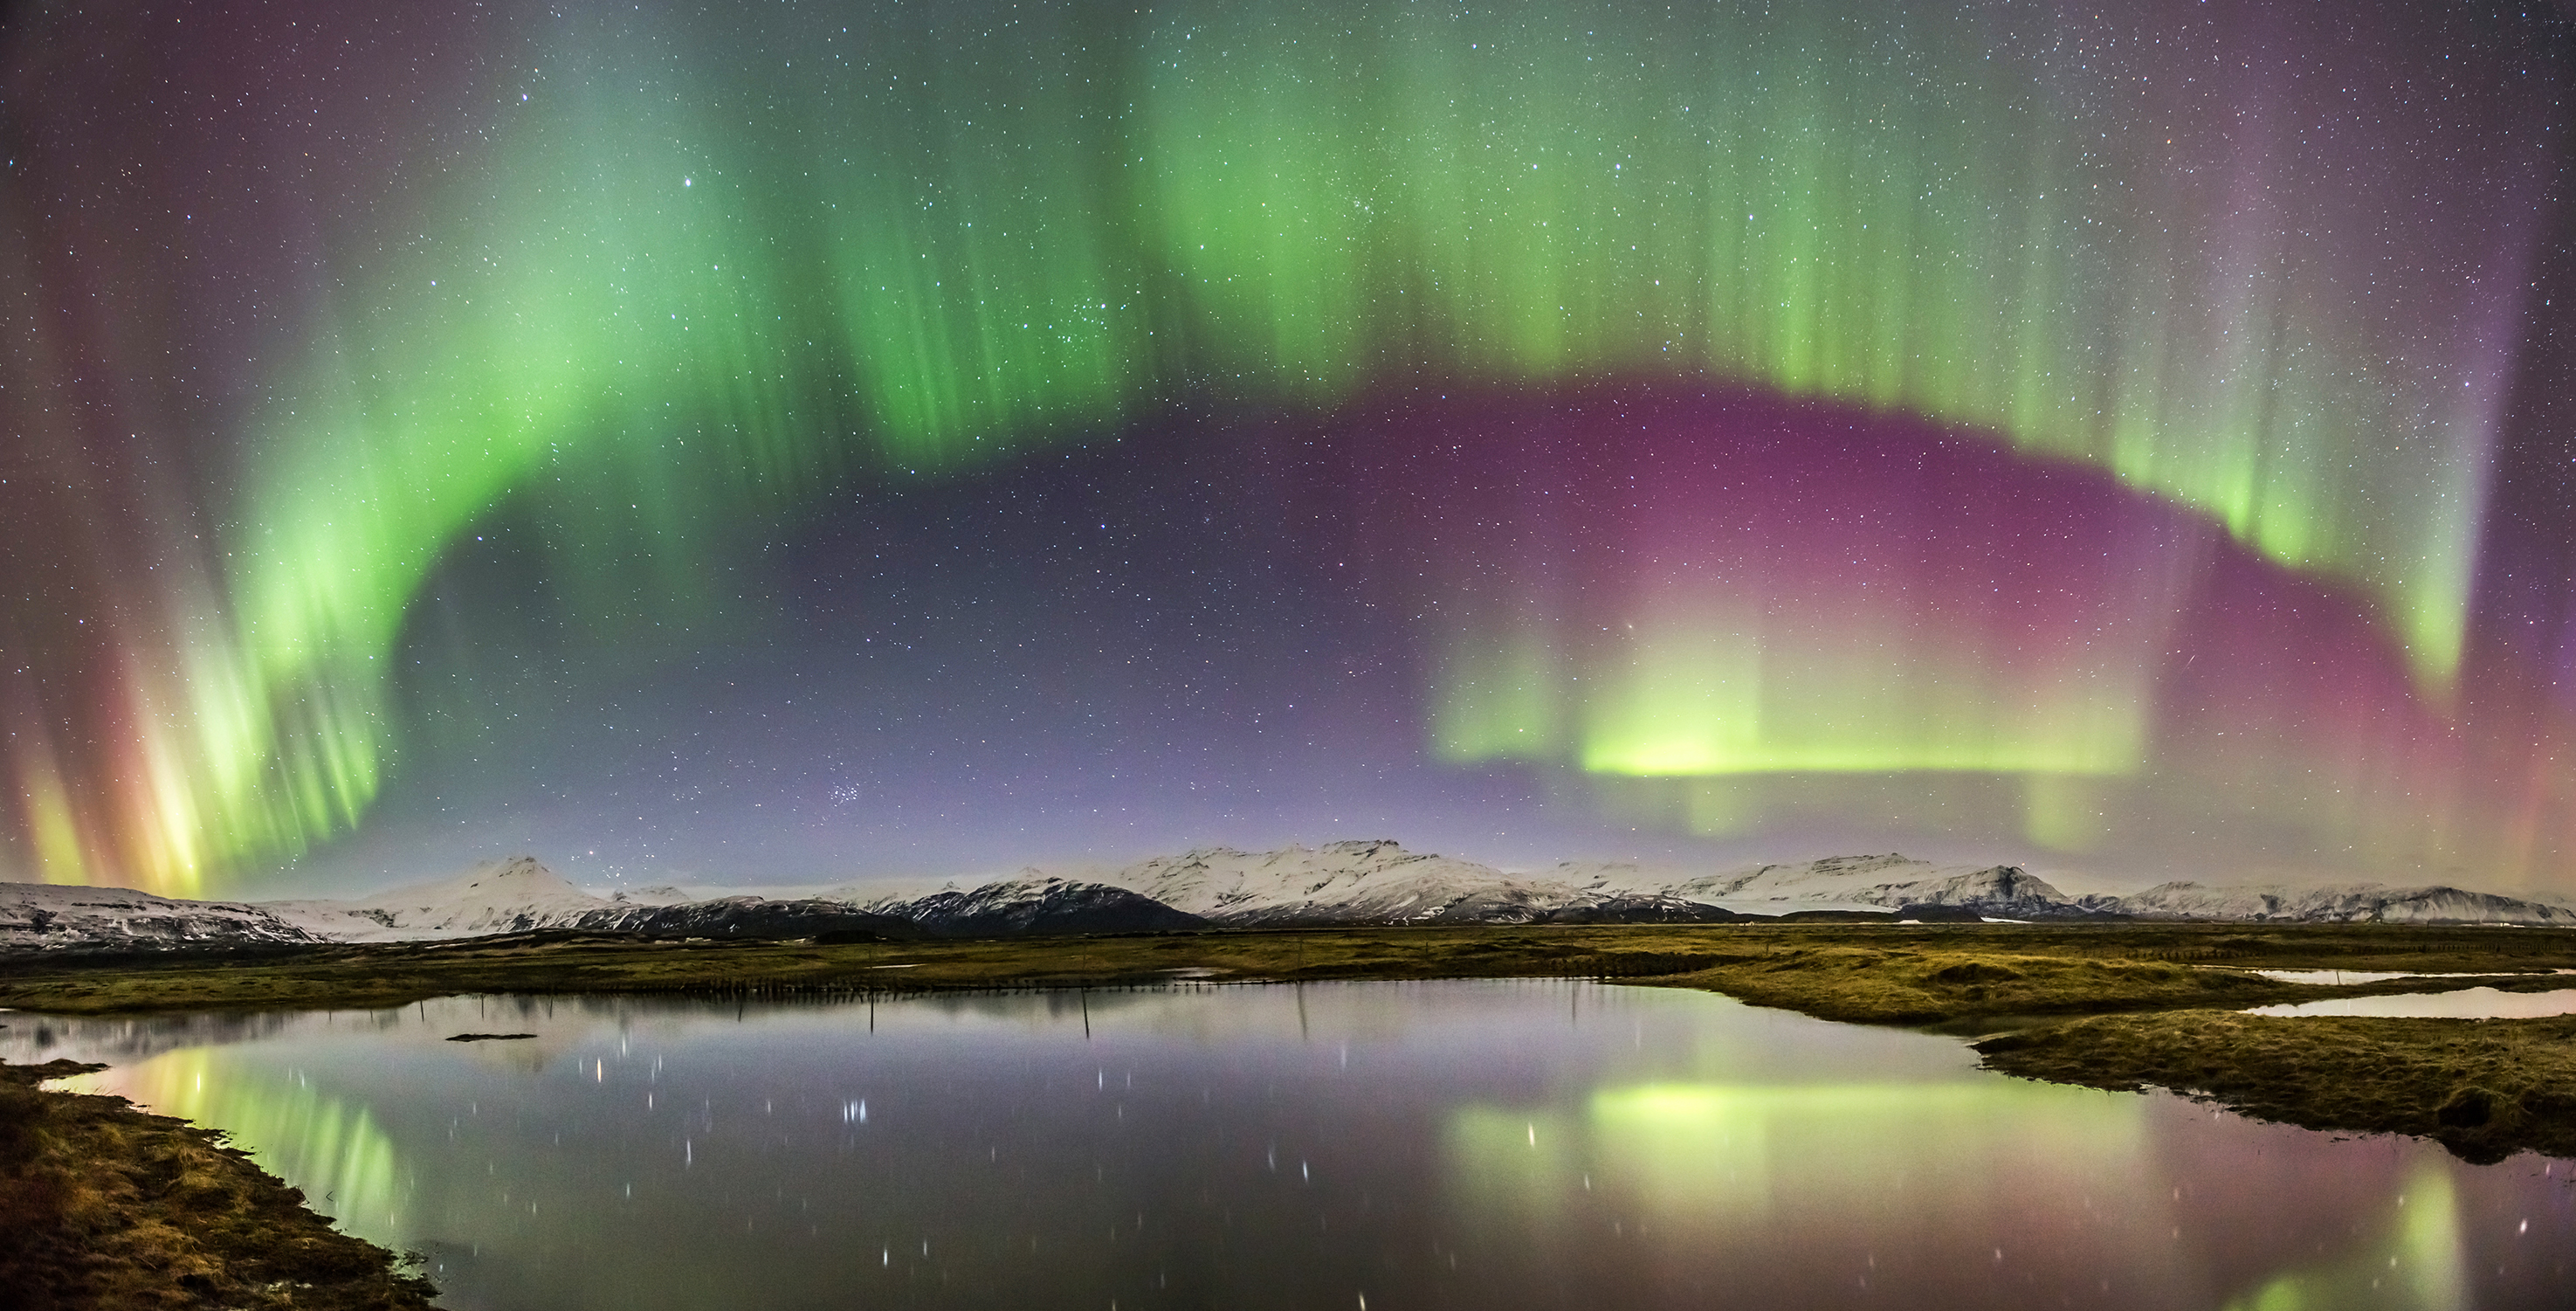 Space in Images  2015  04  Colourful cosmic curtains